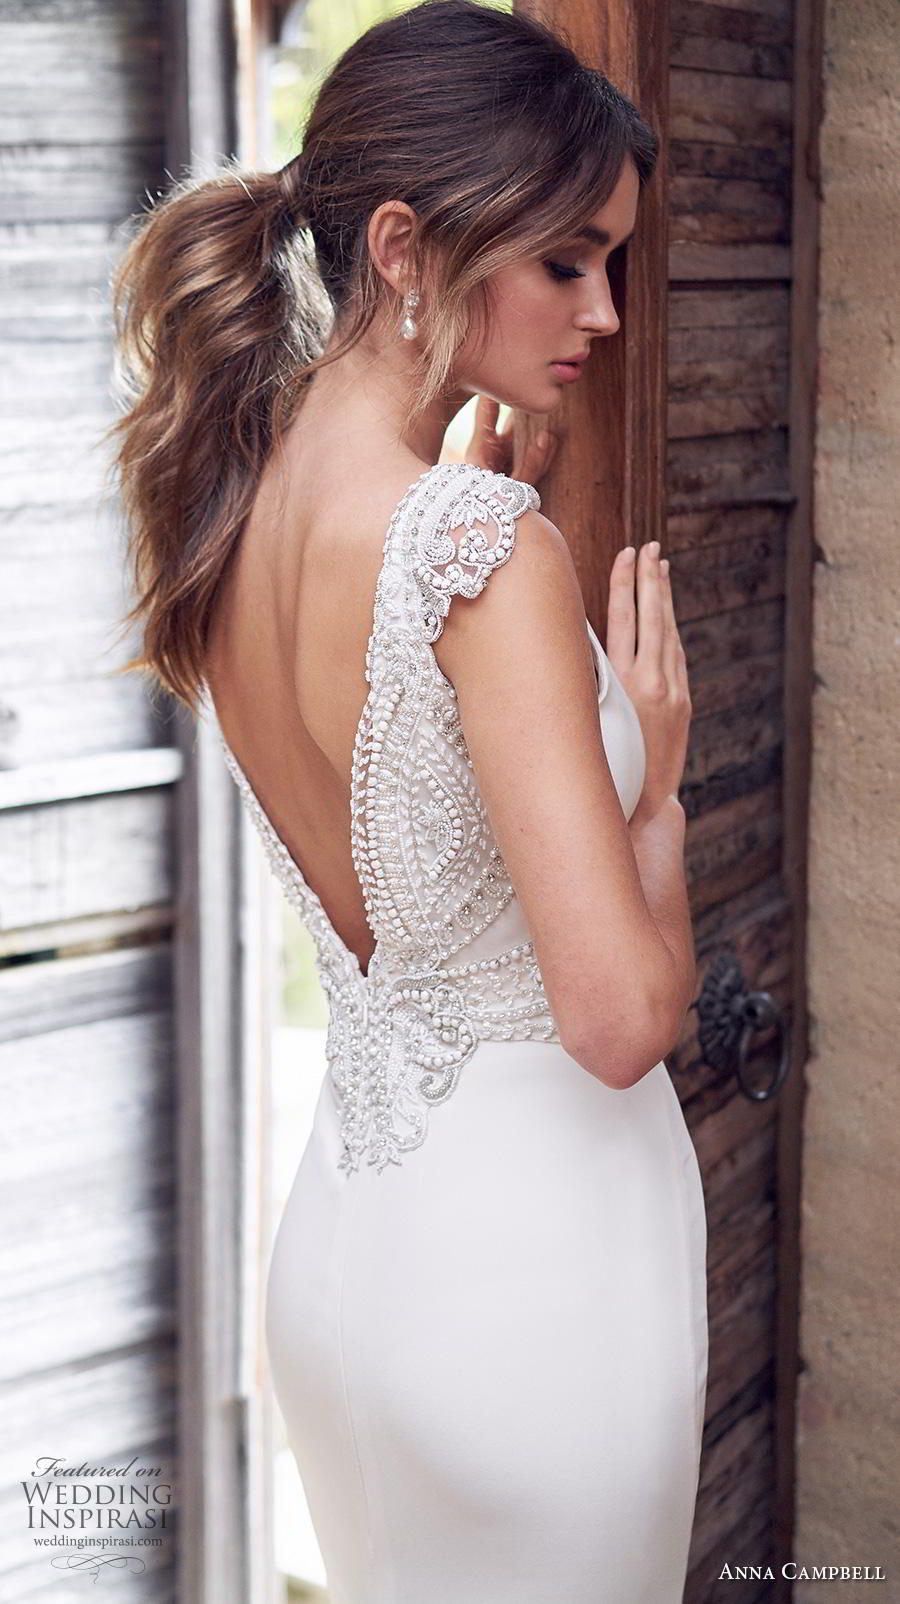 anna campbell 2019 bridal sleeveless v neck simple embellished waist minimalist elegant sheath wedding dress backless v back sweep train (8) zbv